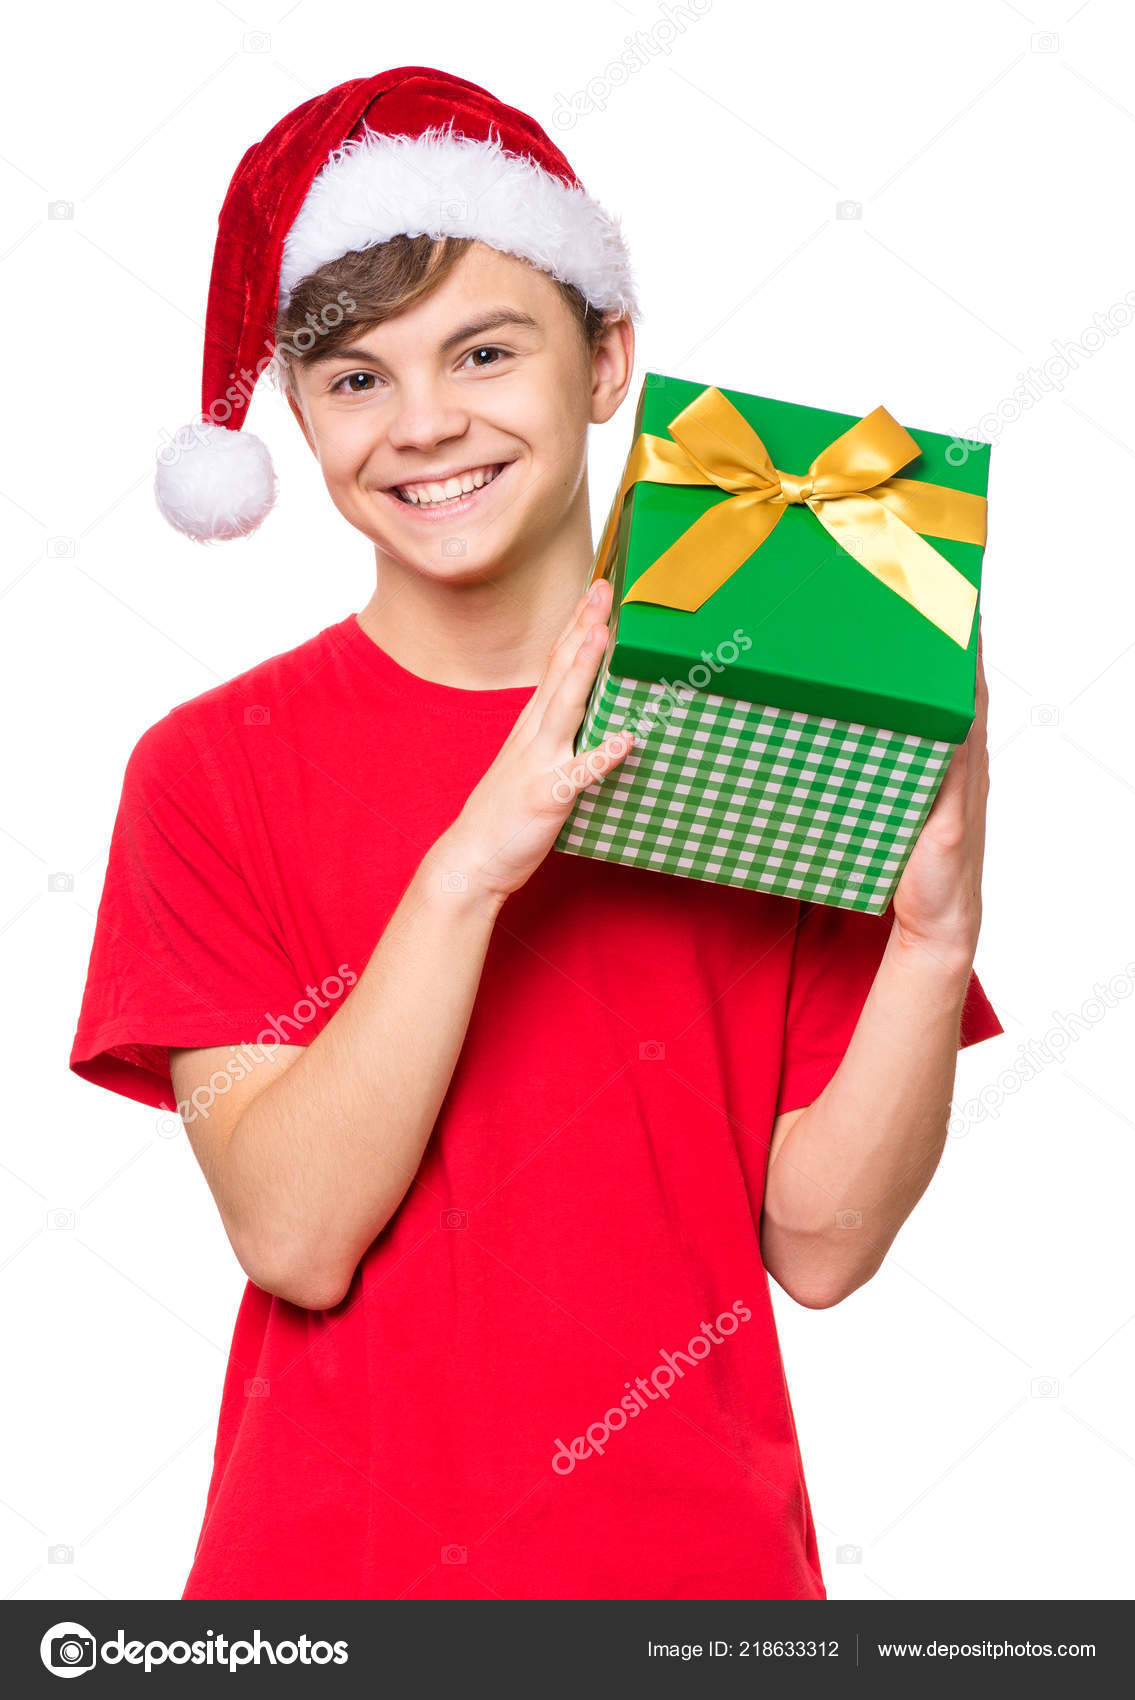 Teen Boy Christmas.Teen Boy With Christmas Hat Stock Photo C Valiza 218633312